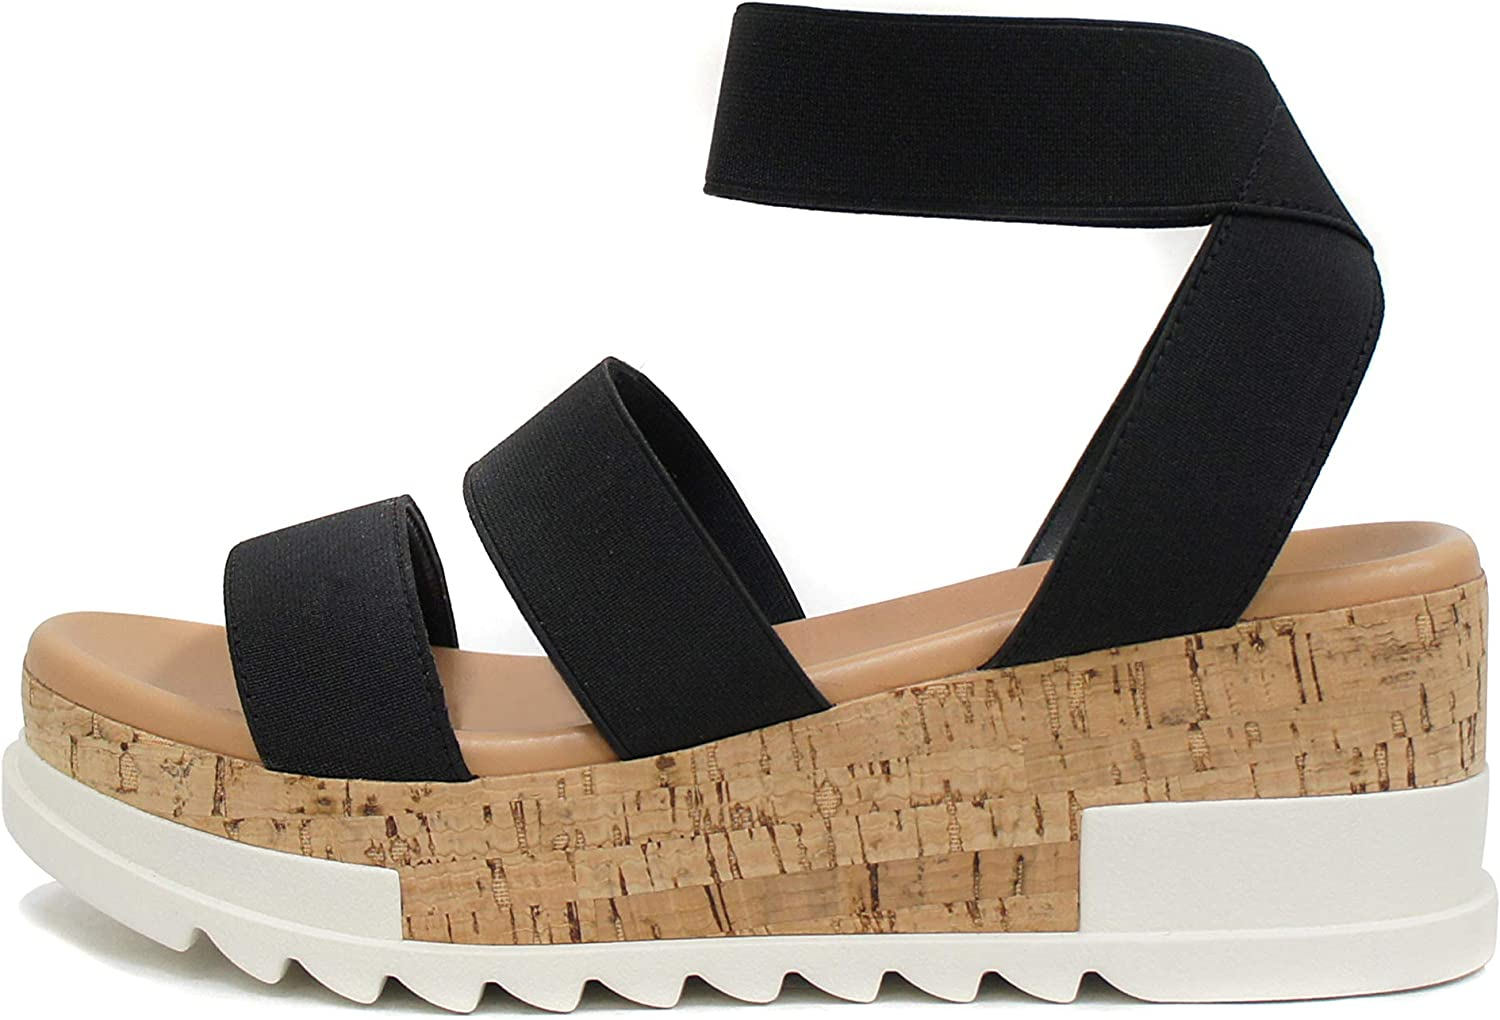 Soda Spring new work Style Madyson ~ All stores are sold Slip On Open Two Elastic St Ankle Bands Toe